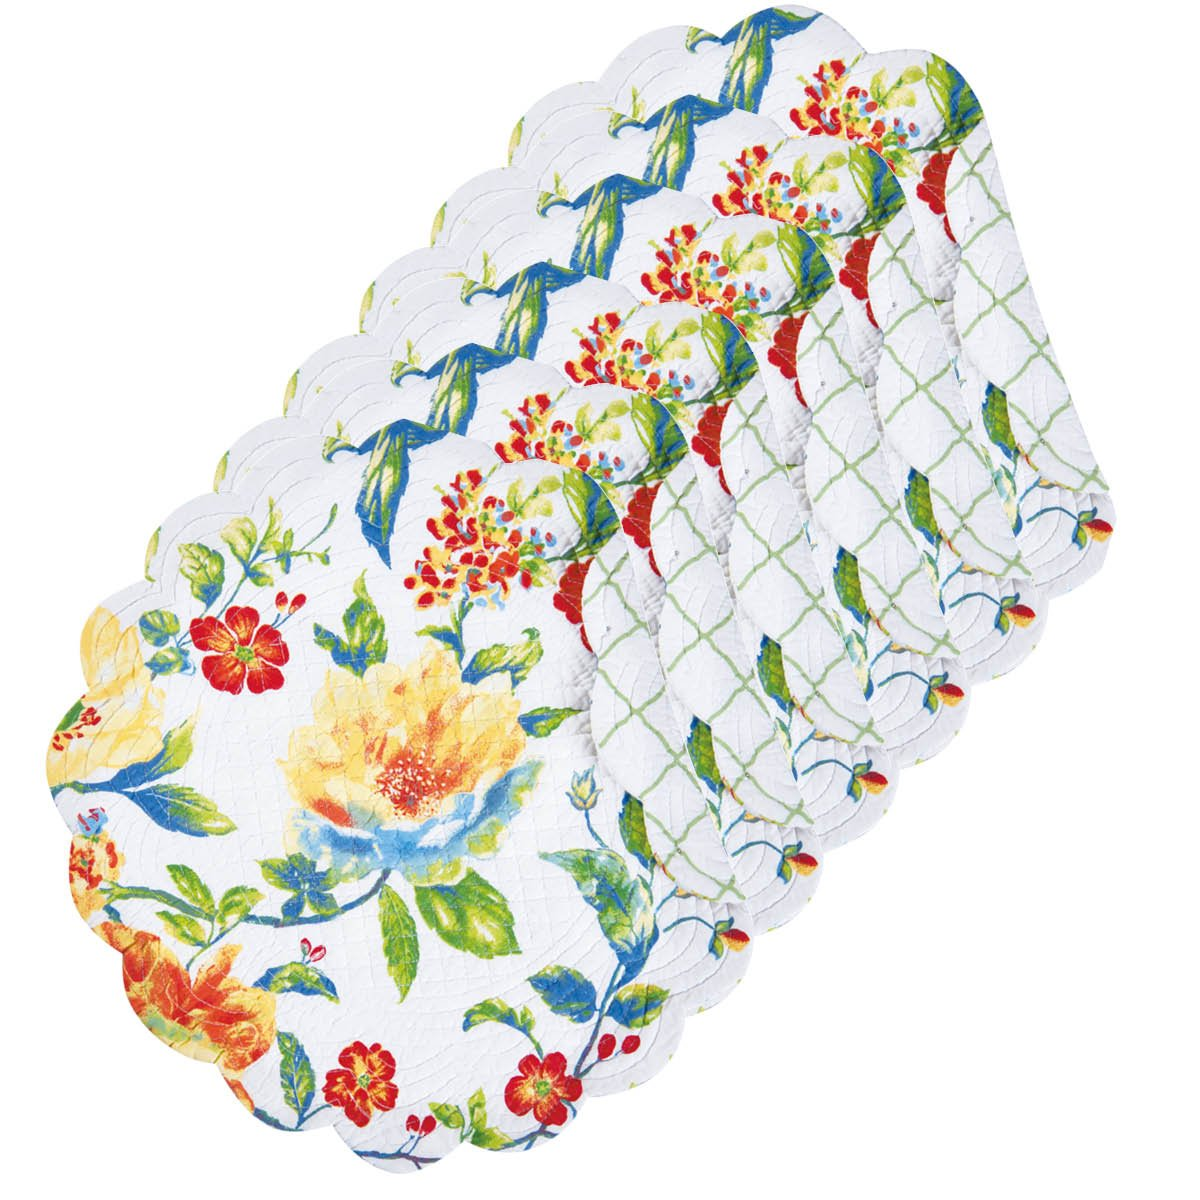 Sabrina Tabletop親 Round Placemat Set of 6 グリーン 862601753S6 Round Placemat Set of 6  B075VNX3F8